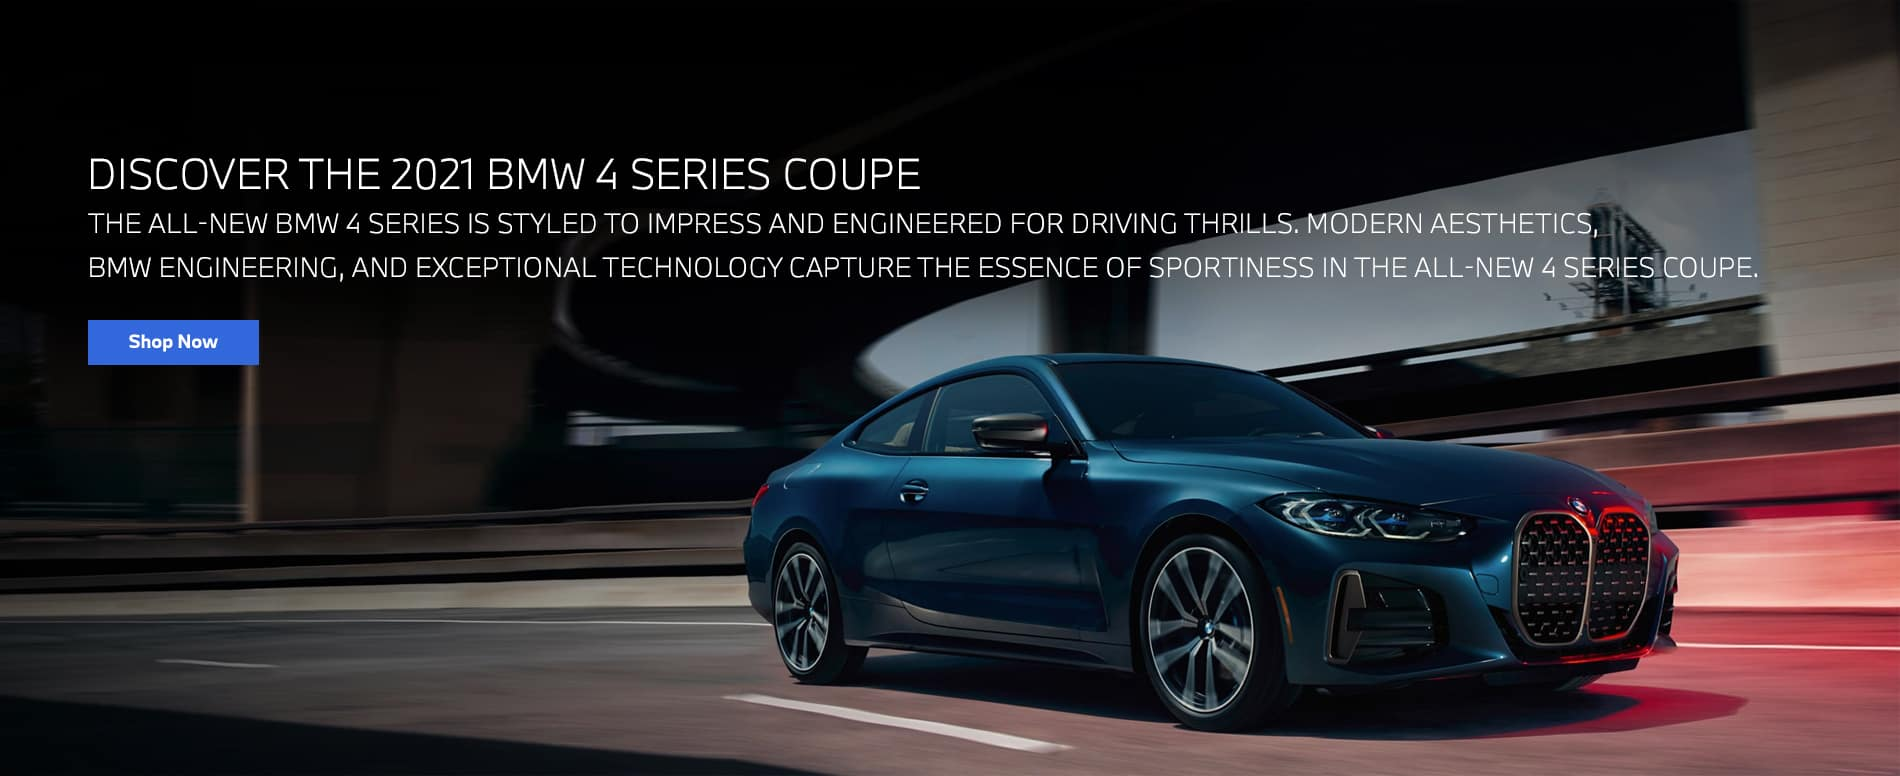 DISCOVER THE 2021 BMW 4 SERIES COUPE